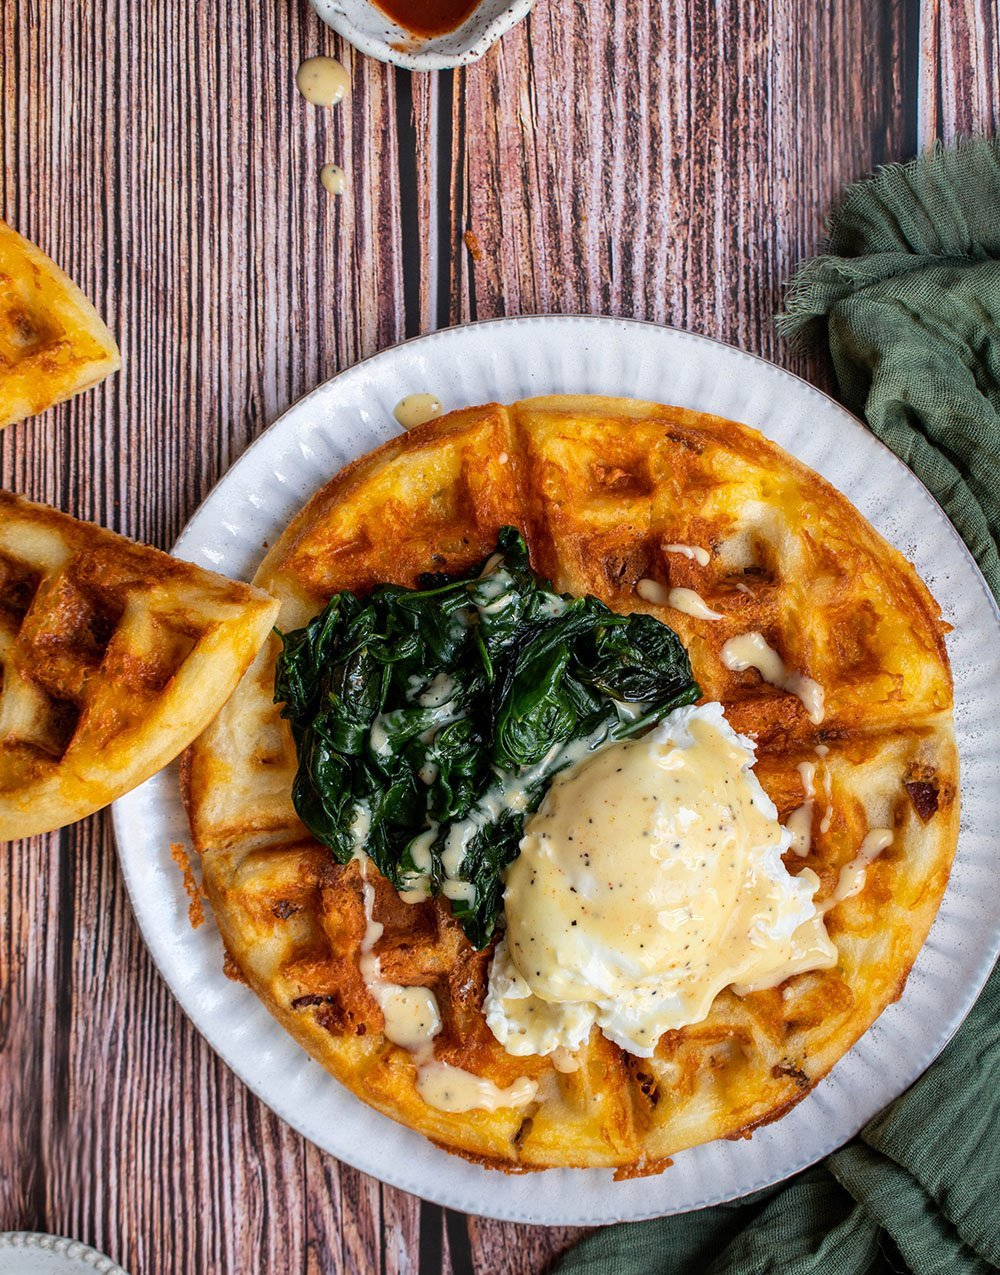 eggs florentine on bacon and cheese waffles